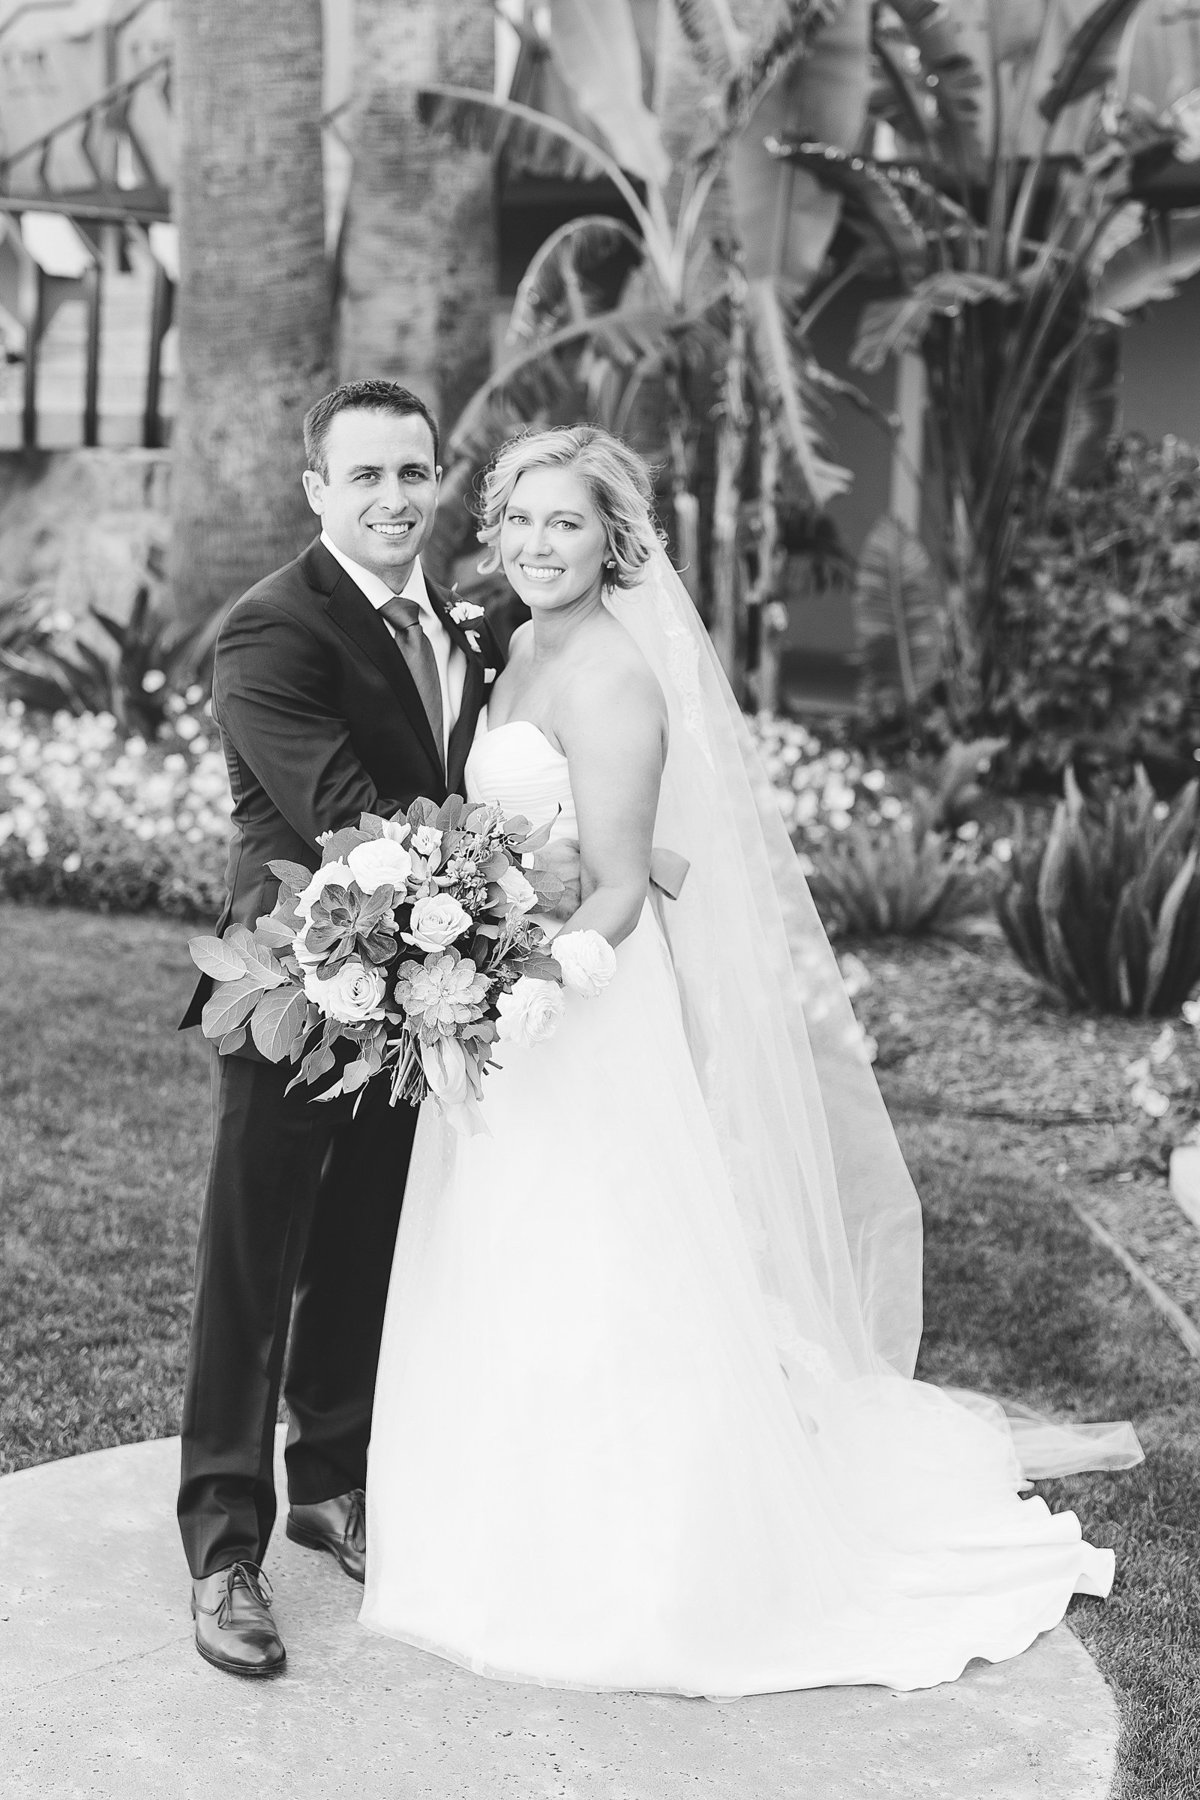 Liz + Mike - Hotel Valley Ho Wedding - Lunabear Studios - Bright and Airy Wedding Photography_0071